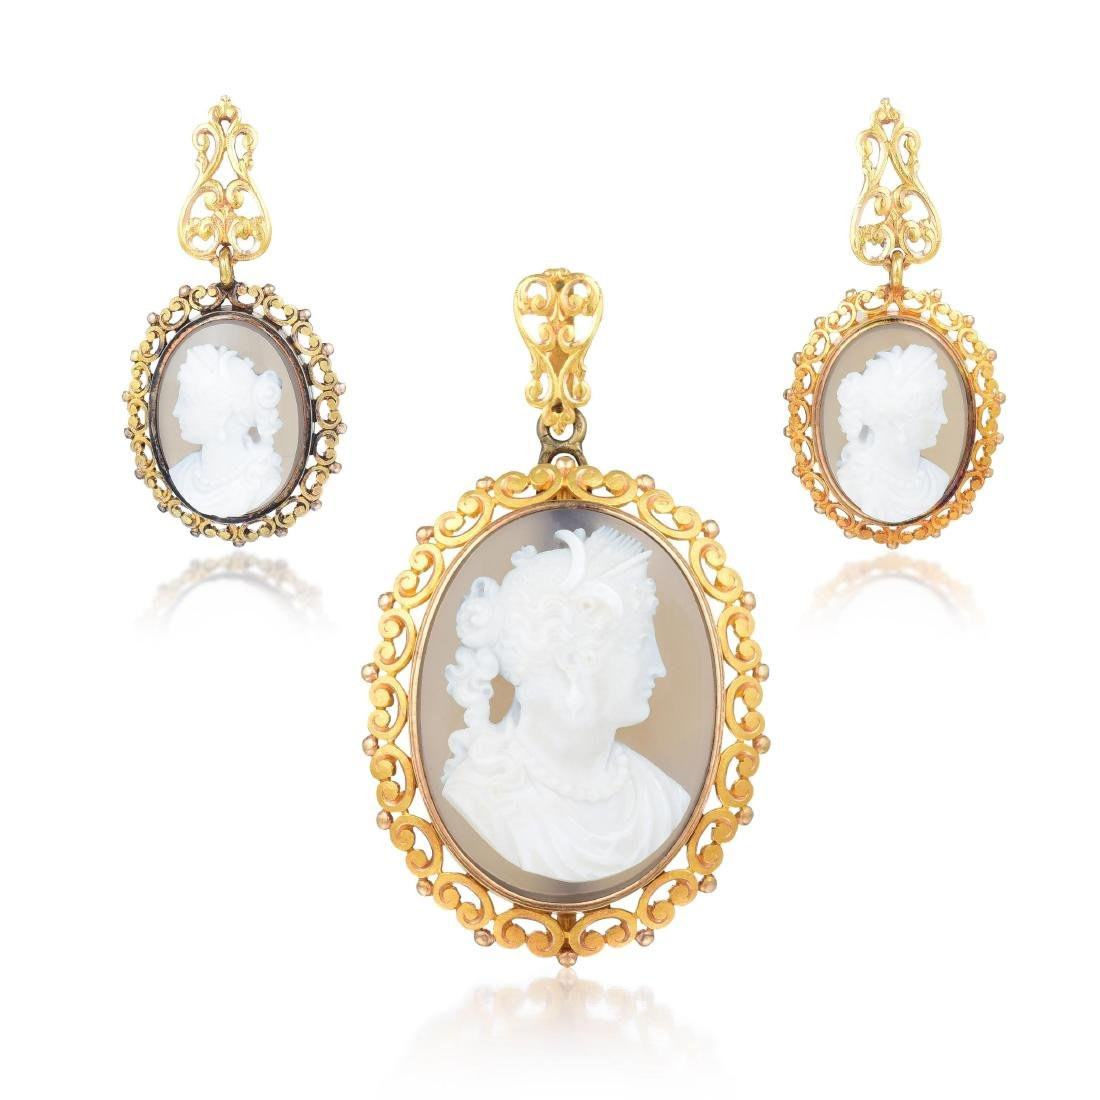 A Suite of 18K Gold and Hardstone Victorian Cameo - 2